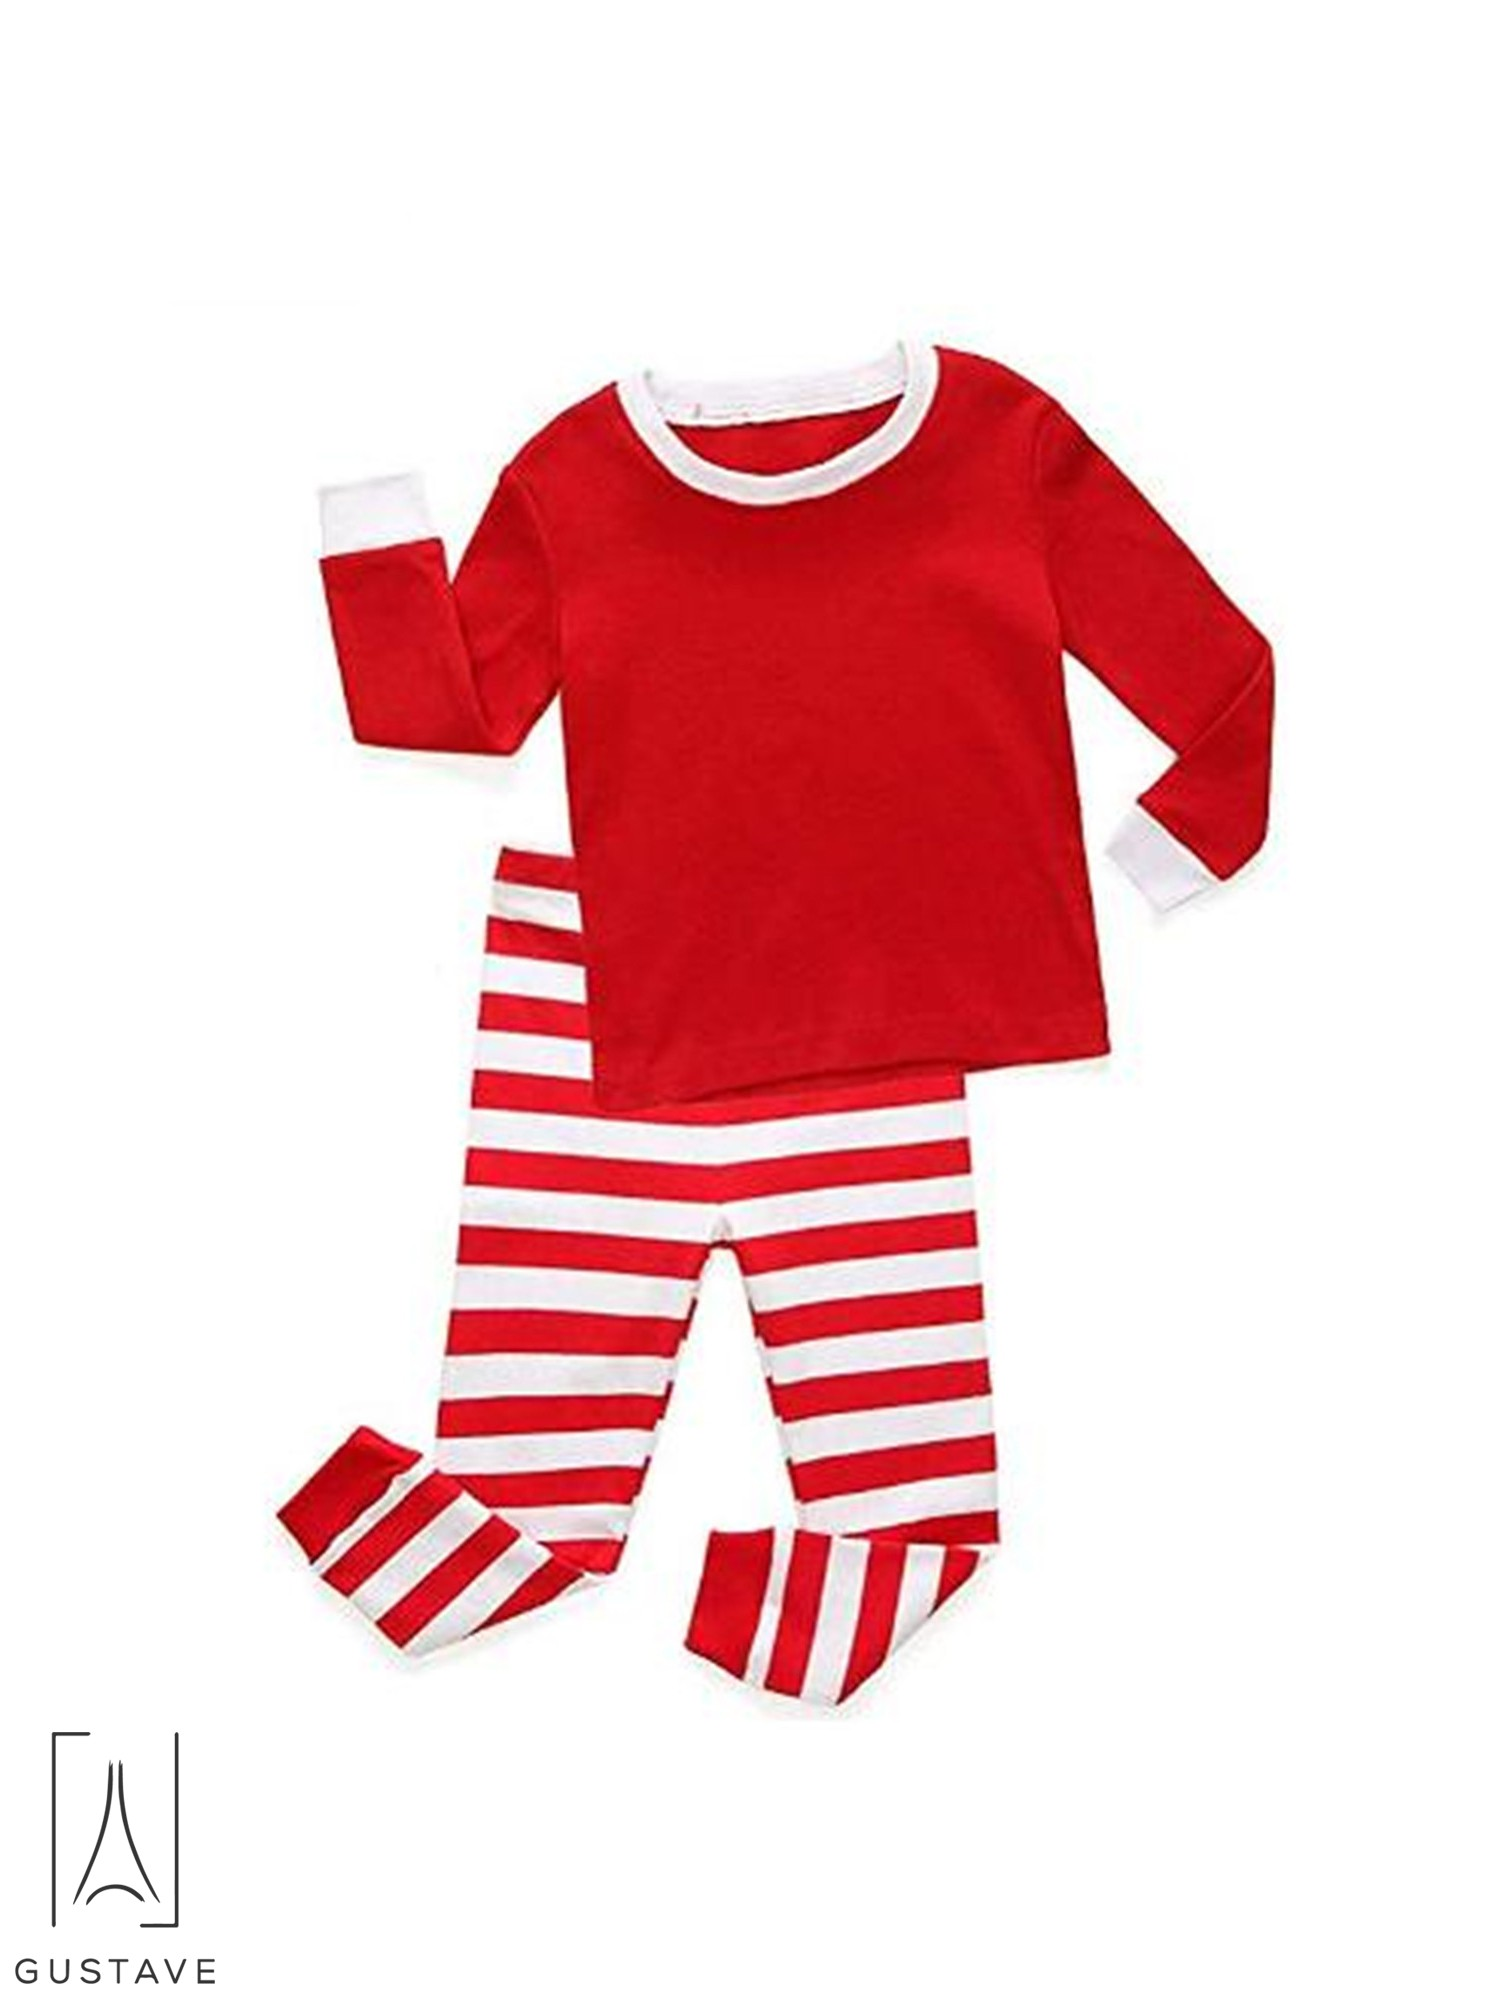 9b307c90bb GustaveDesign Matching Family Christmas Pajamas Set Cotton Tops Striped  Trousers Sleepwear for Dad Mom Kids - Walmart.com